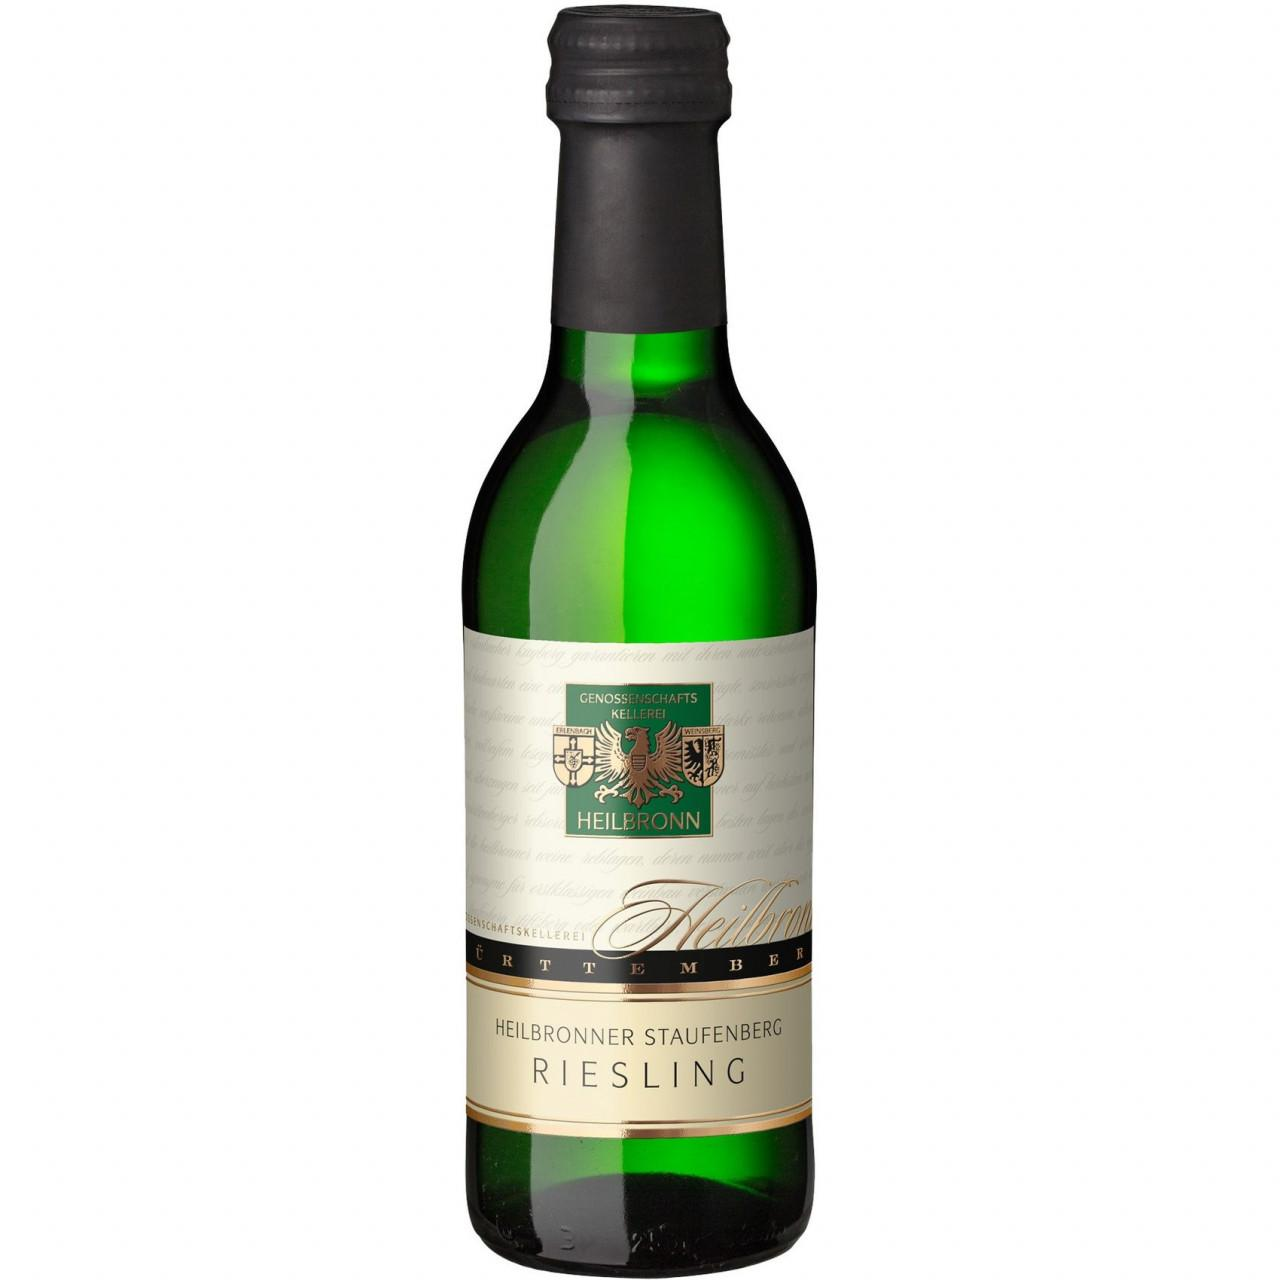 Heilbronner Staufenberg Riesling 2019 0,25l